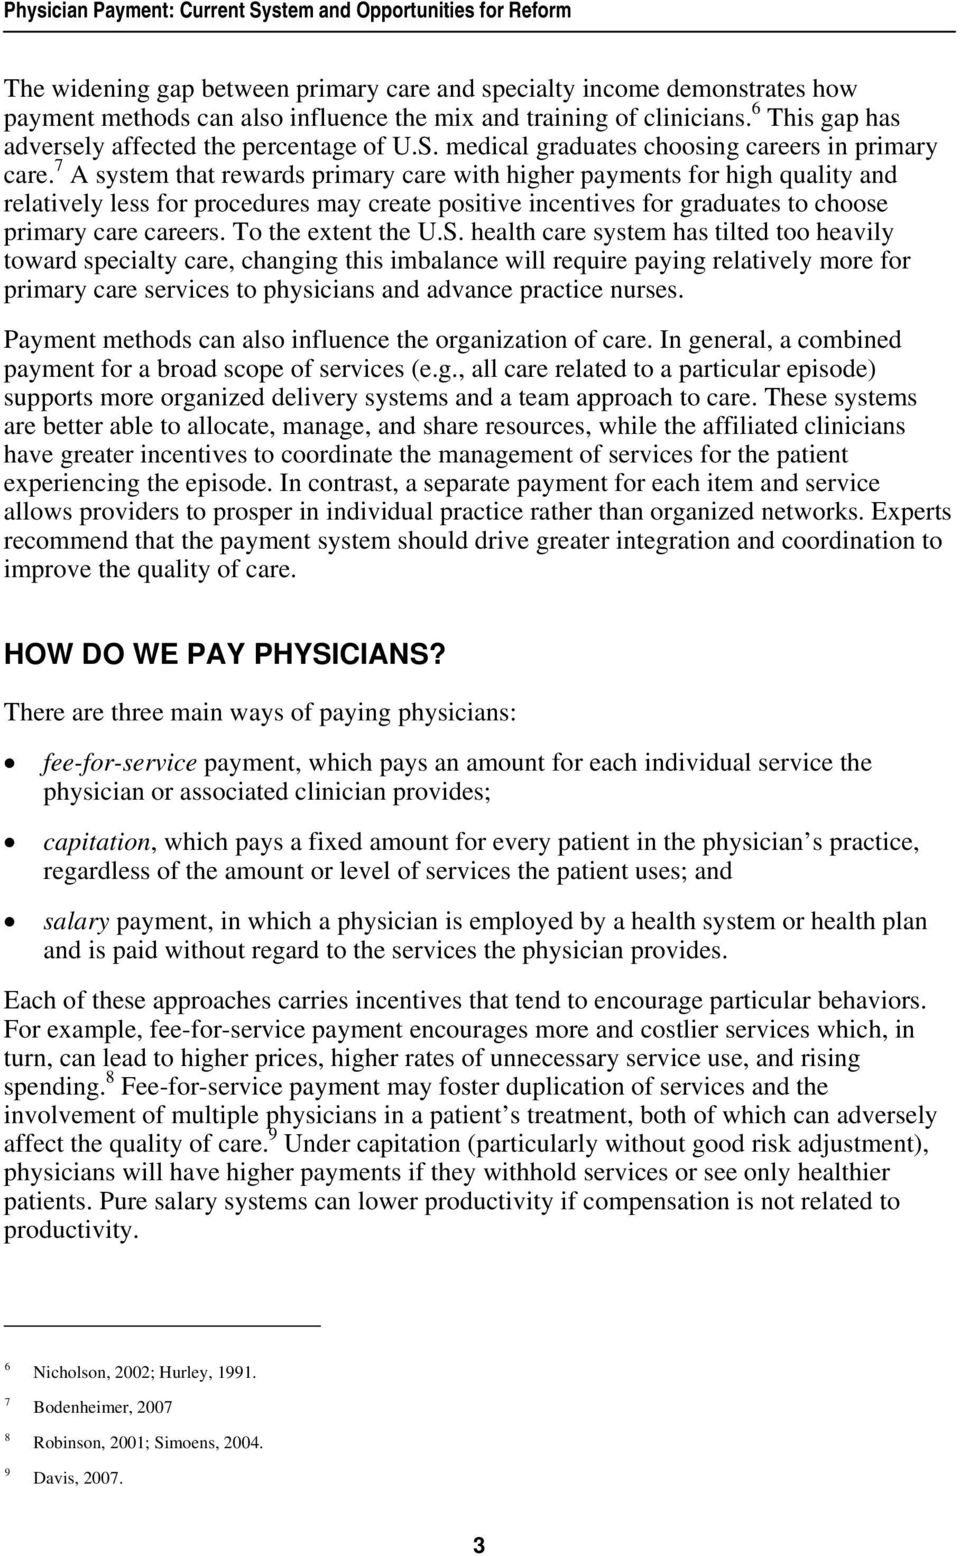 7 A system that rewards primary care with higher payments for high quality and relatively less for procedures may create positive incentives for graduates to choose primary care careers.